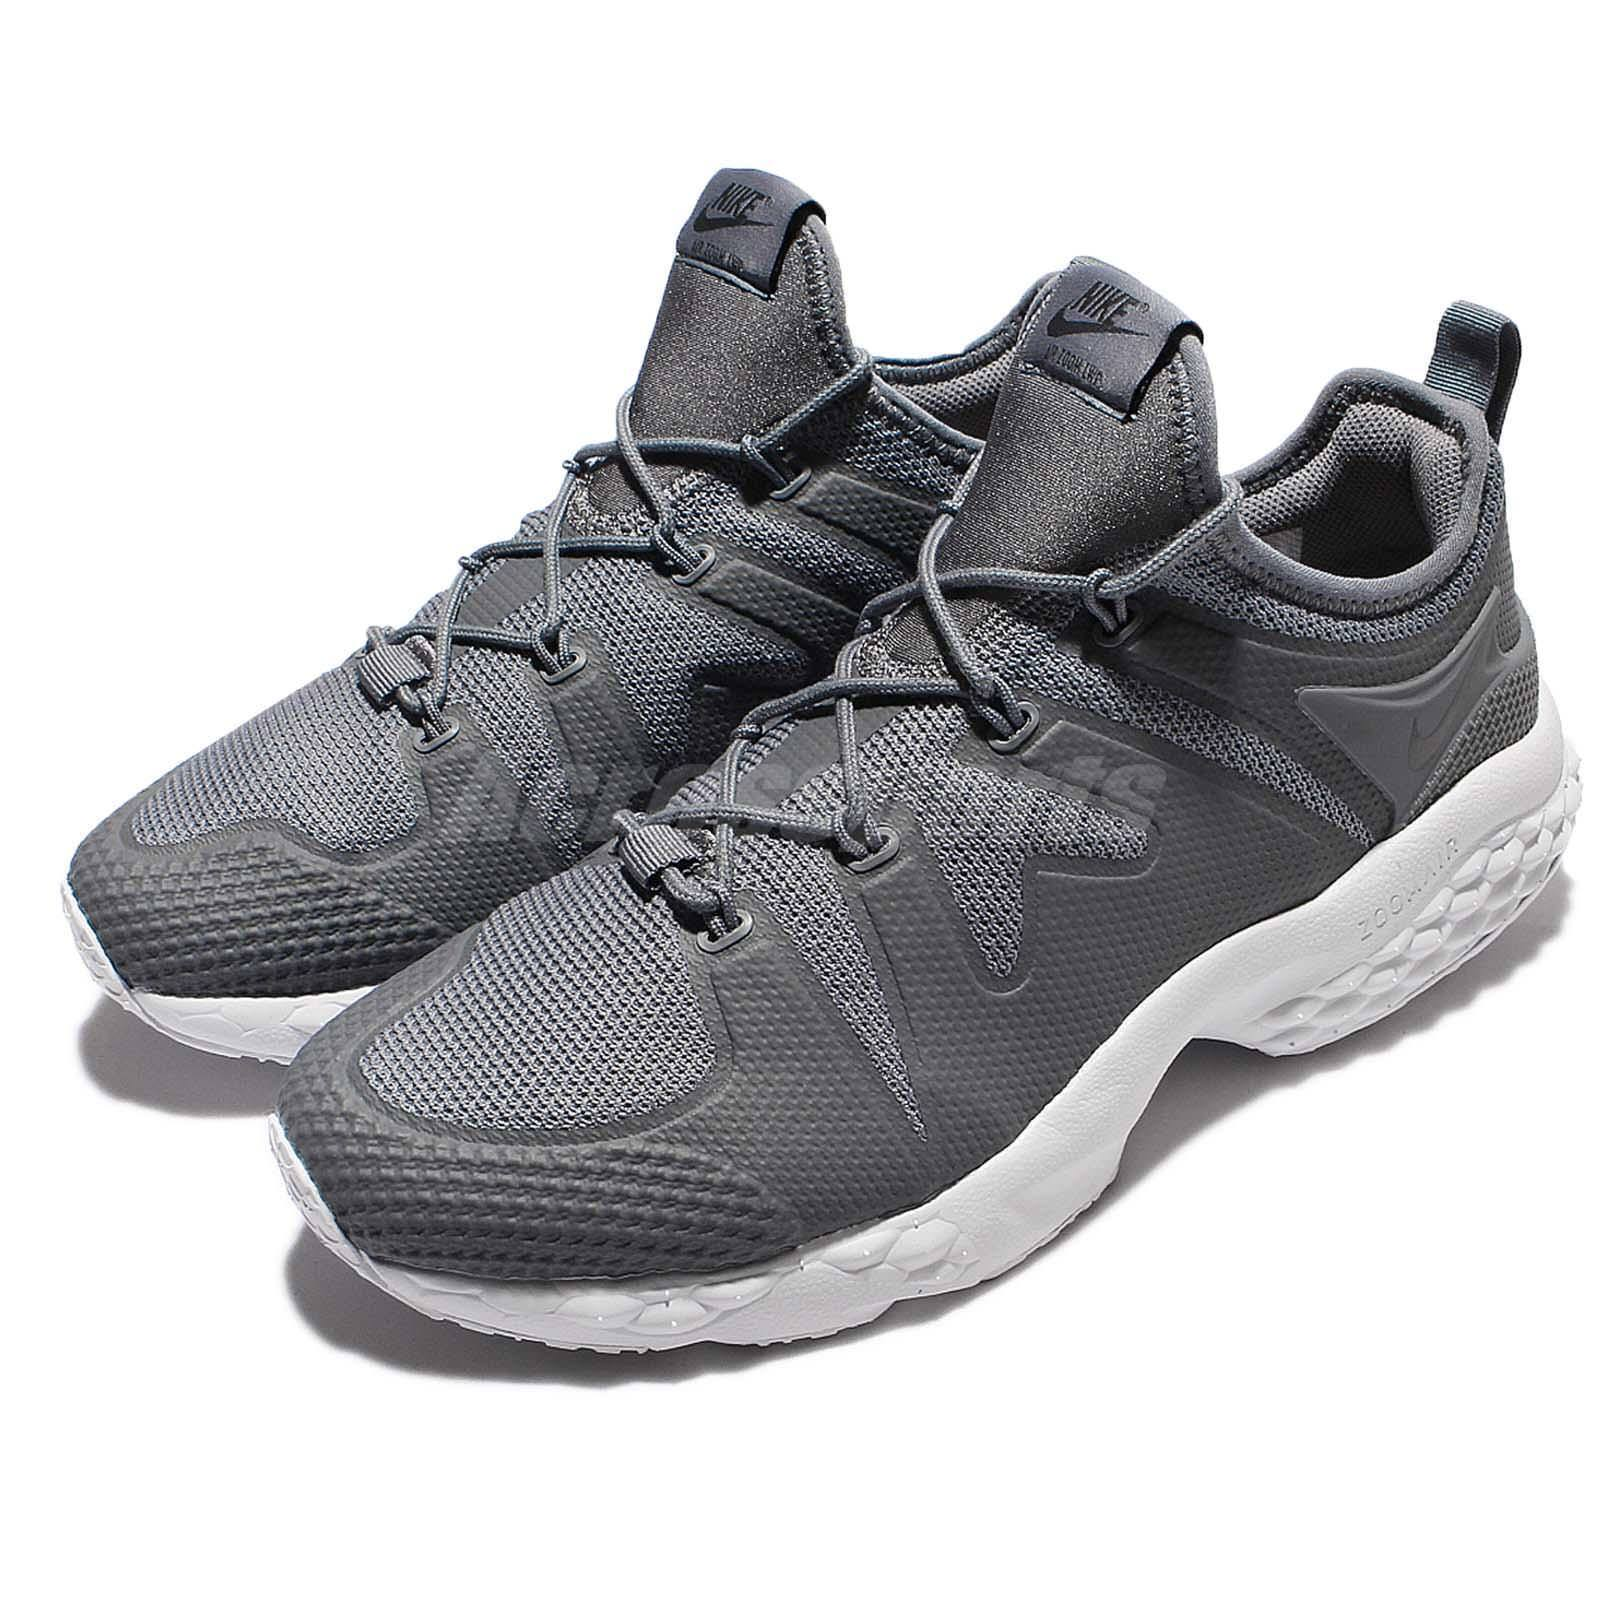 Nike new Air Zoom LWP '16 SP Mens Shoes 918226-004 size 10 150